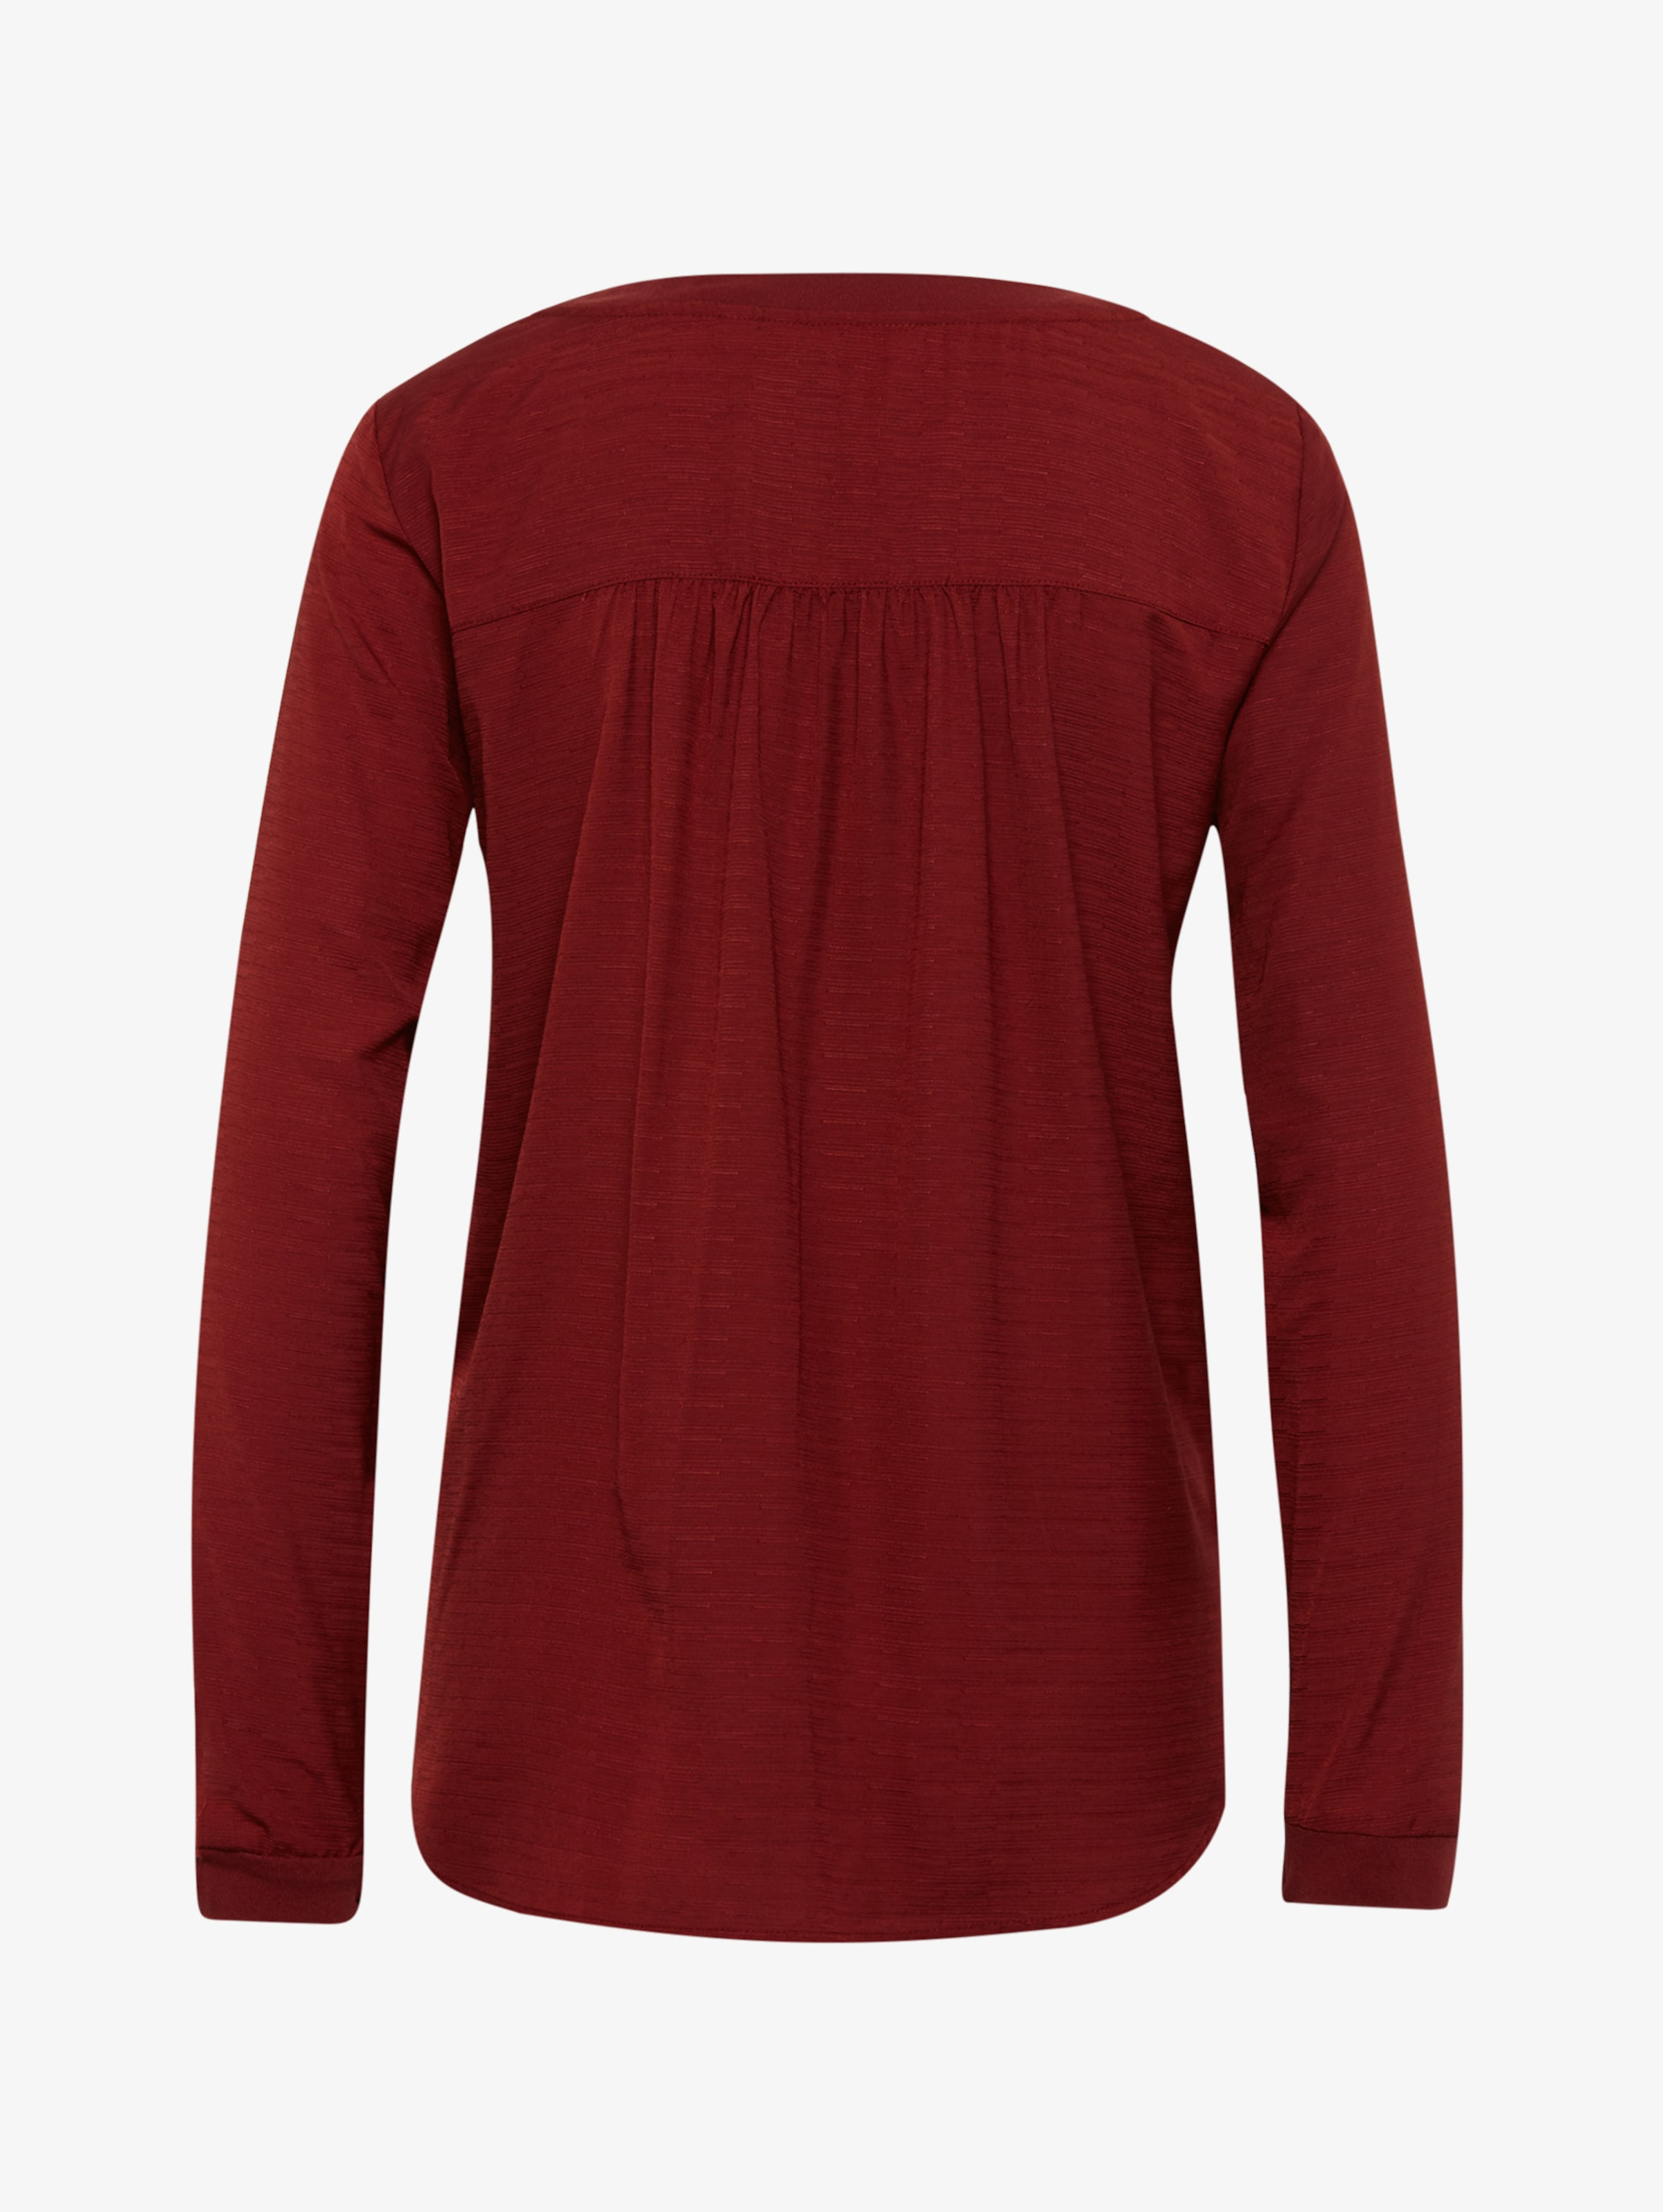 In Tailor Blusenshirt In Tailor Tom Rostrot Blusenshirt Tom Rostrot xCdorBe